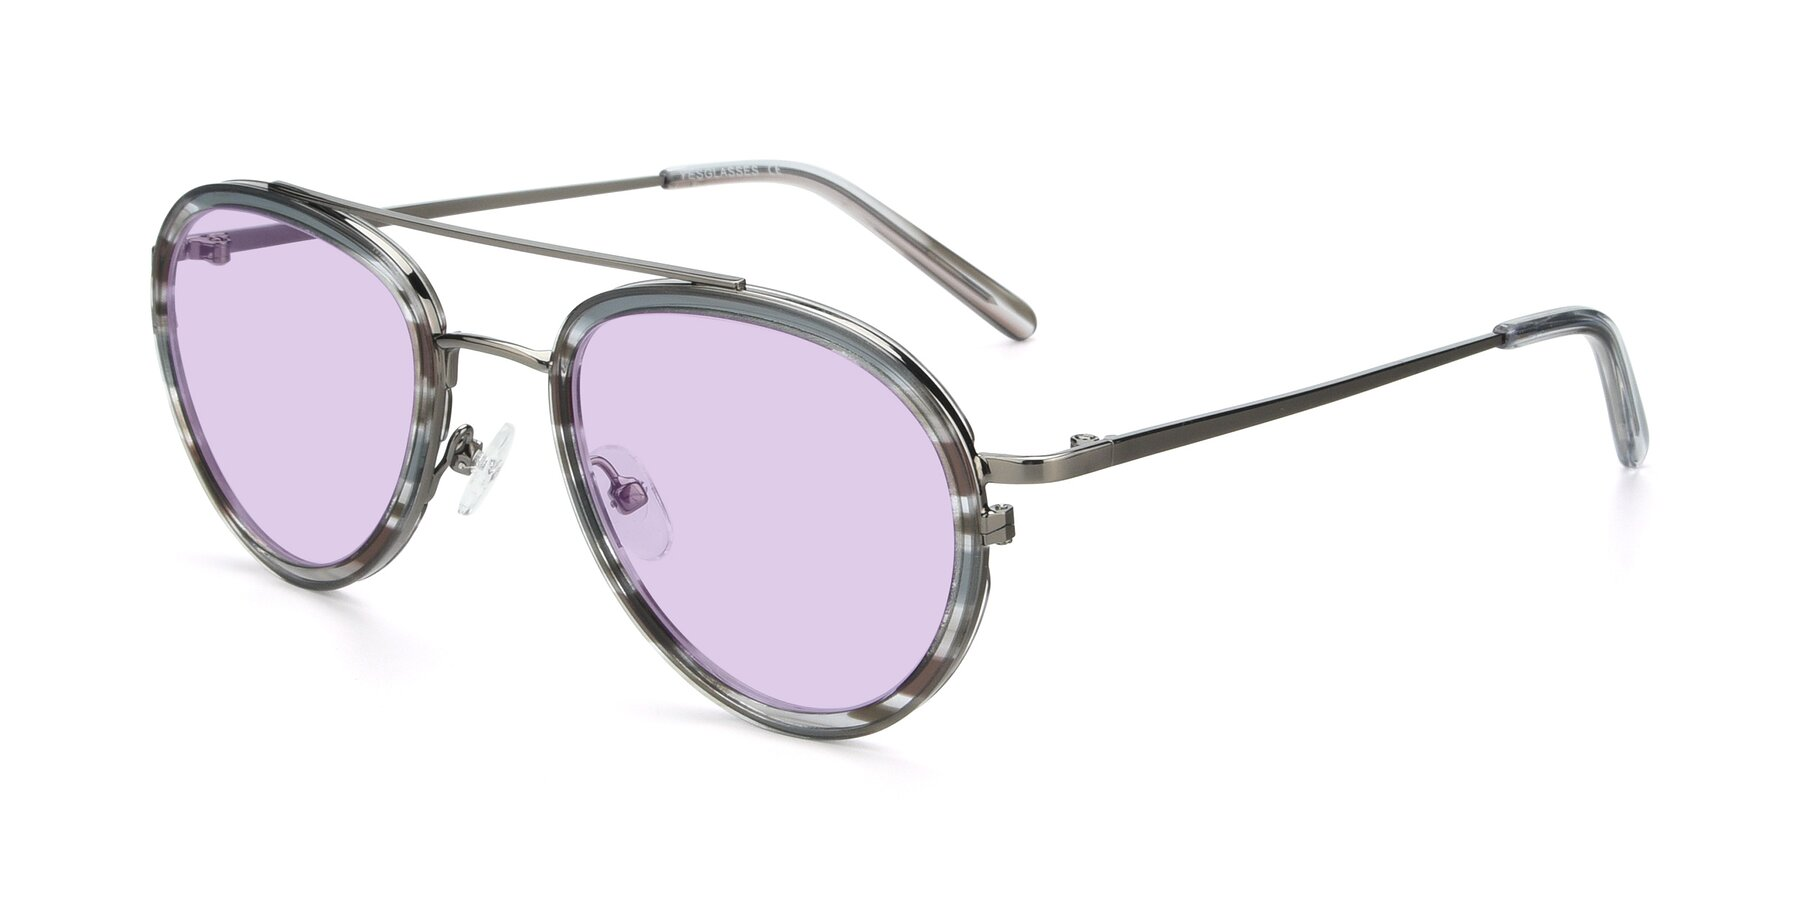 Angle of 9554 in Gun-Transparent with Light Purple Tinted Lenses